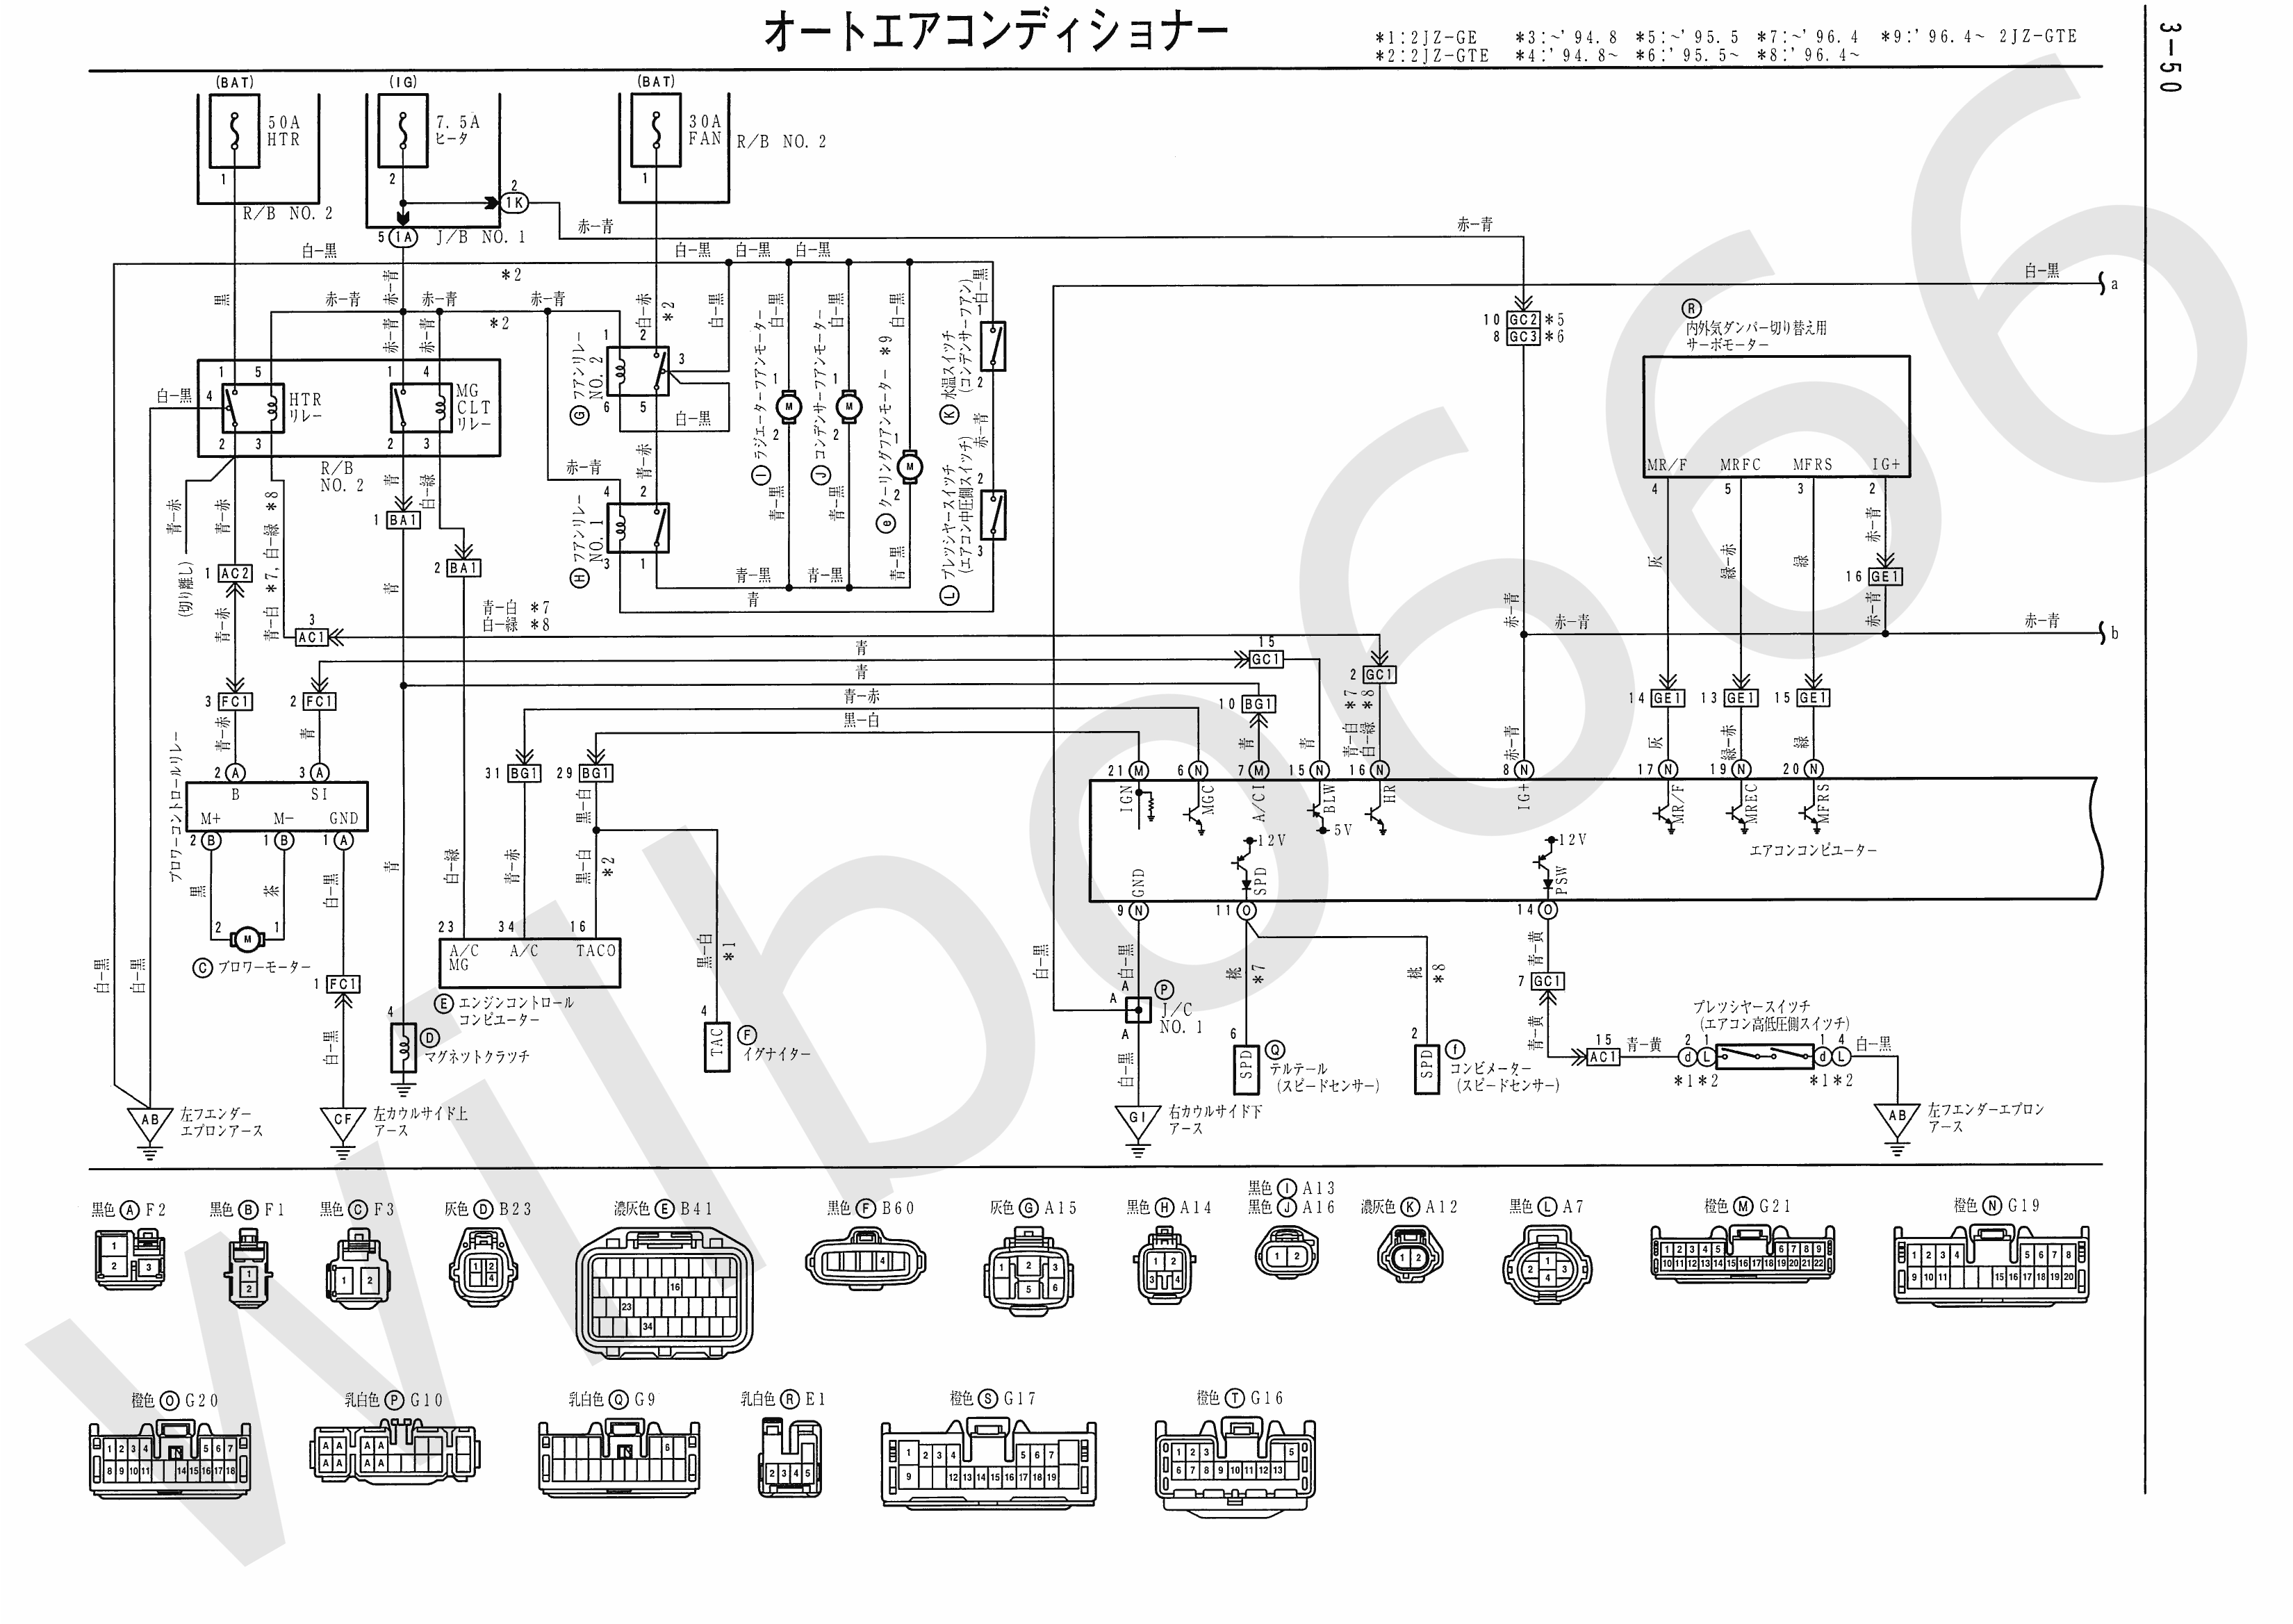 2jzgte Tps Wiring Diagram 25 Images Au Falcon Jza80 Electrical 6742505 3 50 Wilbo666 2jz Gte Vvti Supra Engine